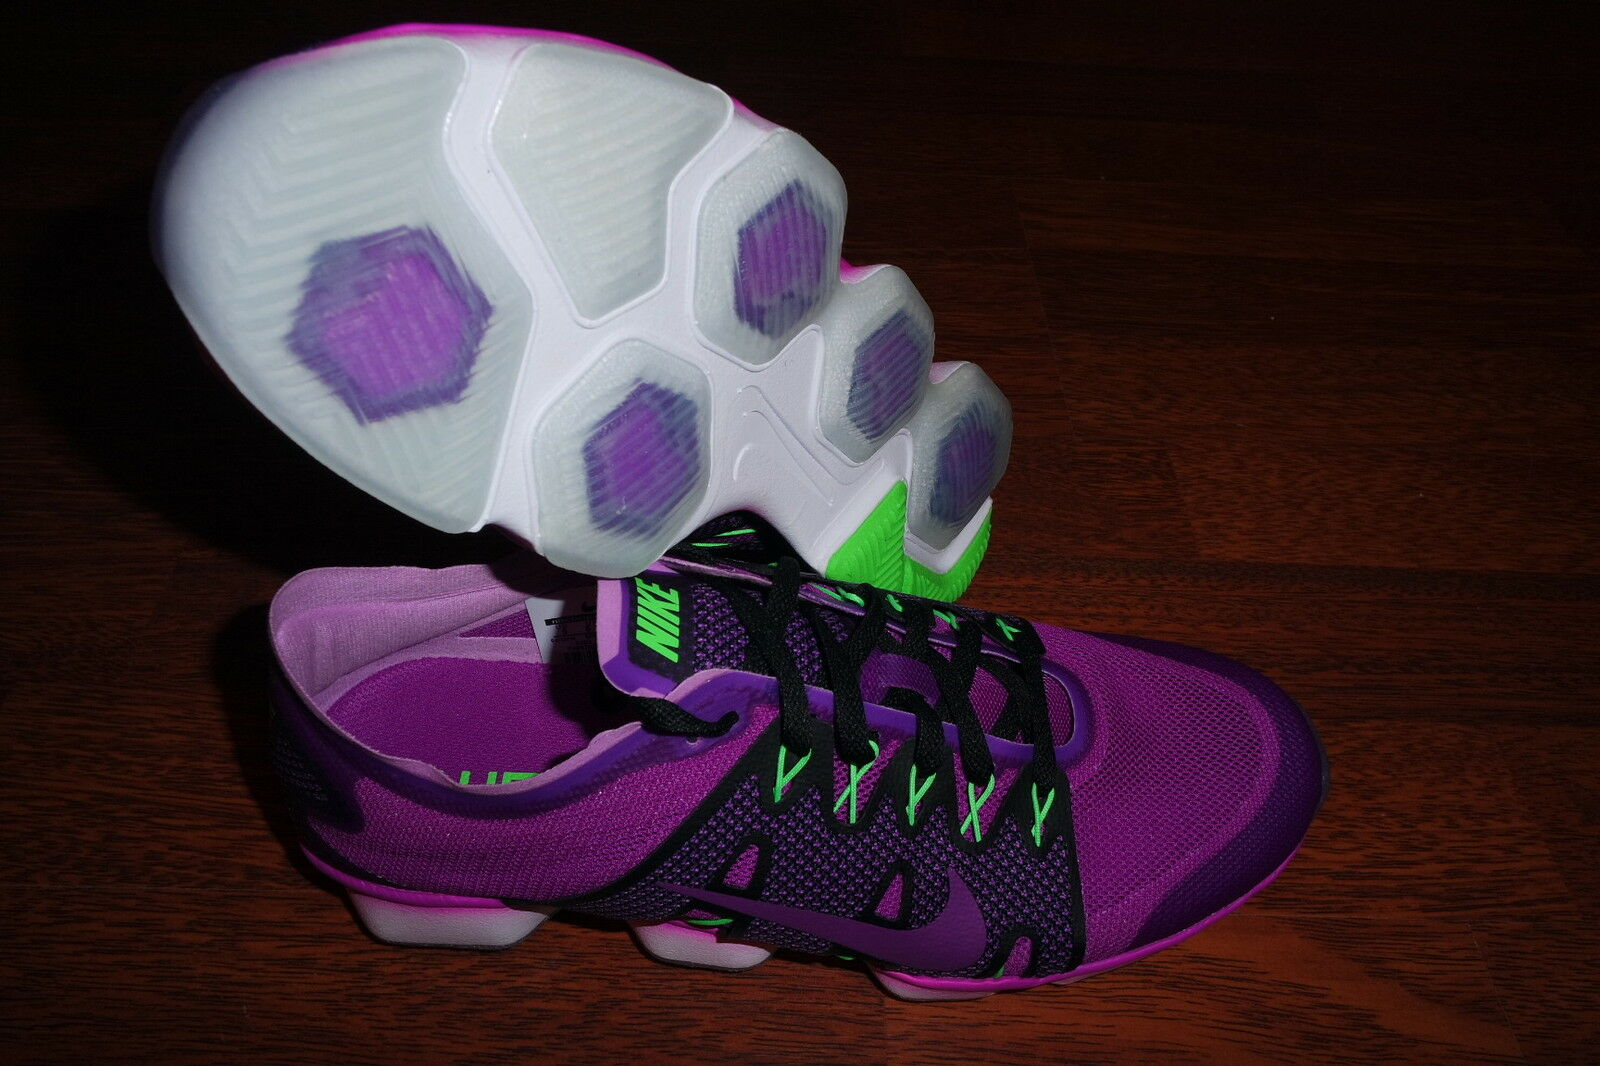 femmes  Nike Air Zoom Fit Agility 2 PURPLE Fitness Training Chaussures 806472 500 SZ 9